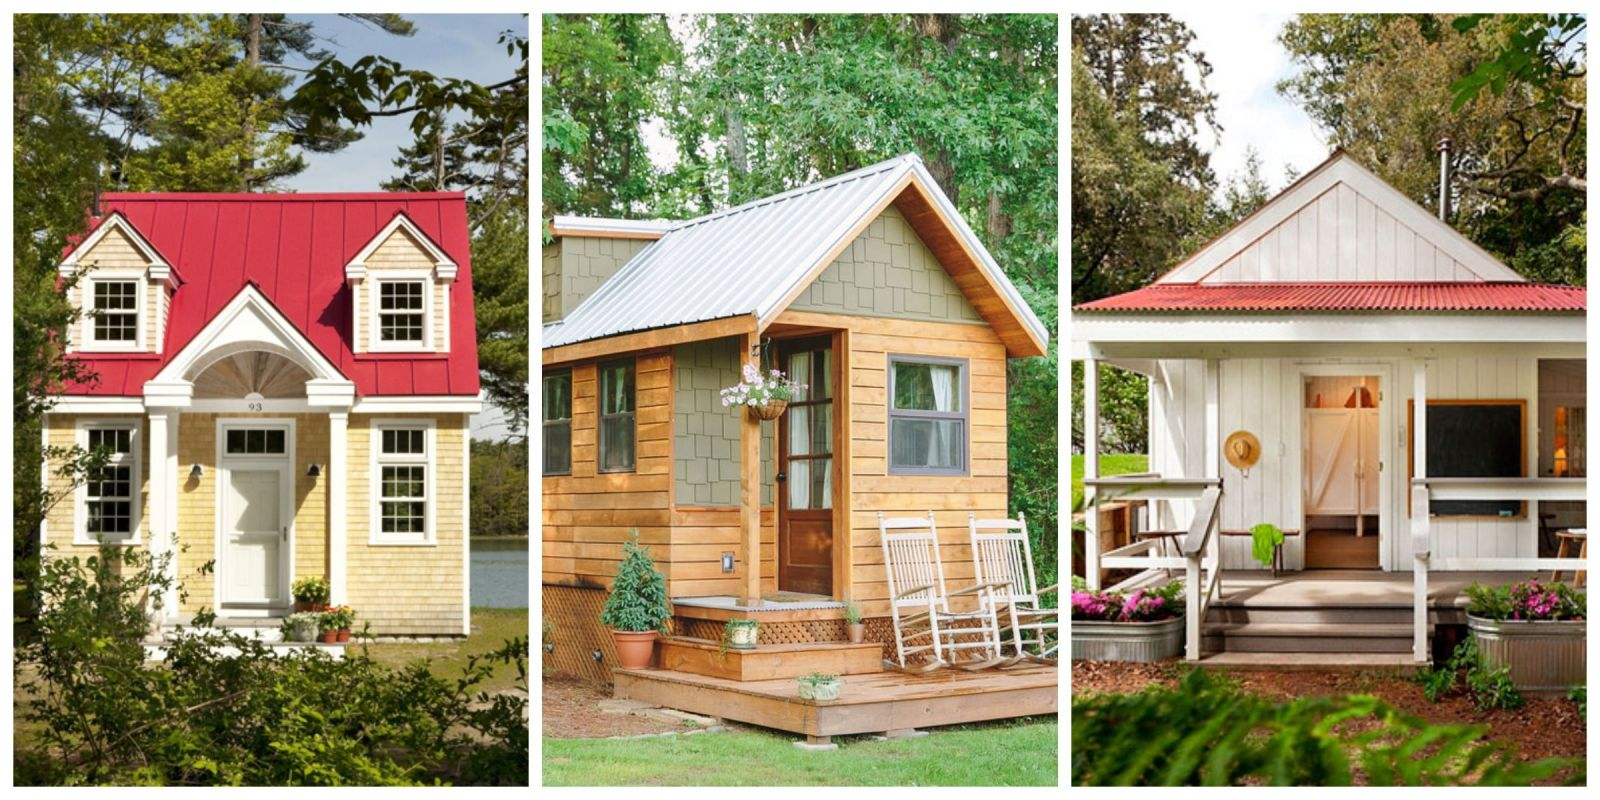 65 Best Tiny Houses 2017 Small House Pictures Plans - simple house designs